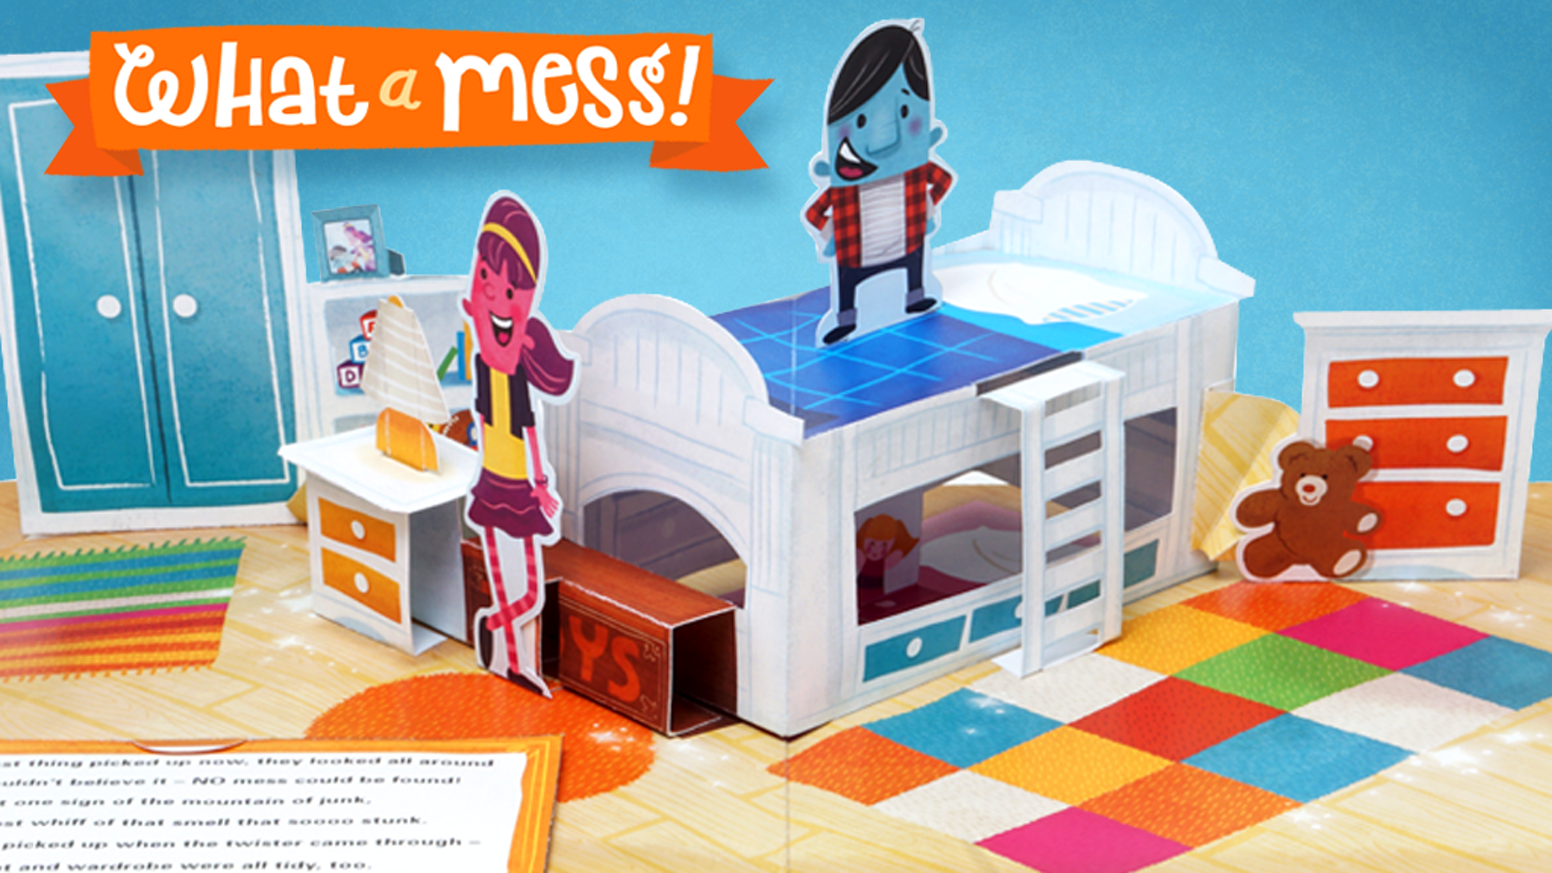 This Beautifully Illustrated Complex Pop Up Book Will Make You Laugh While